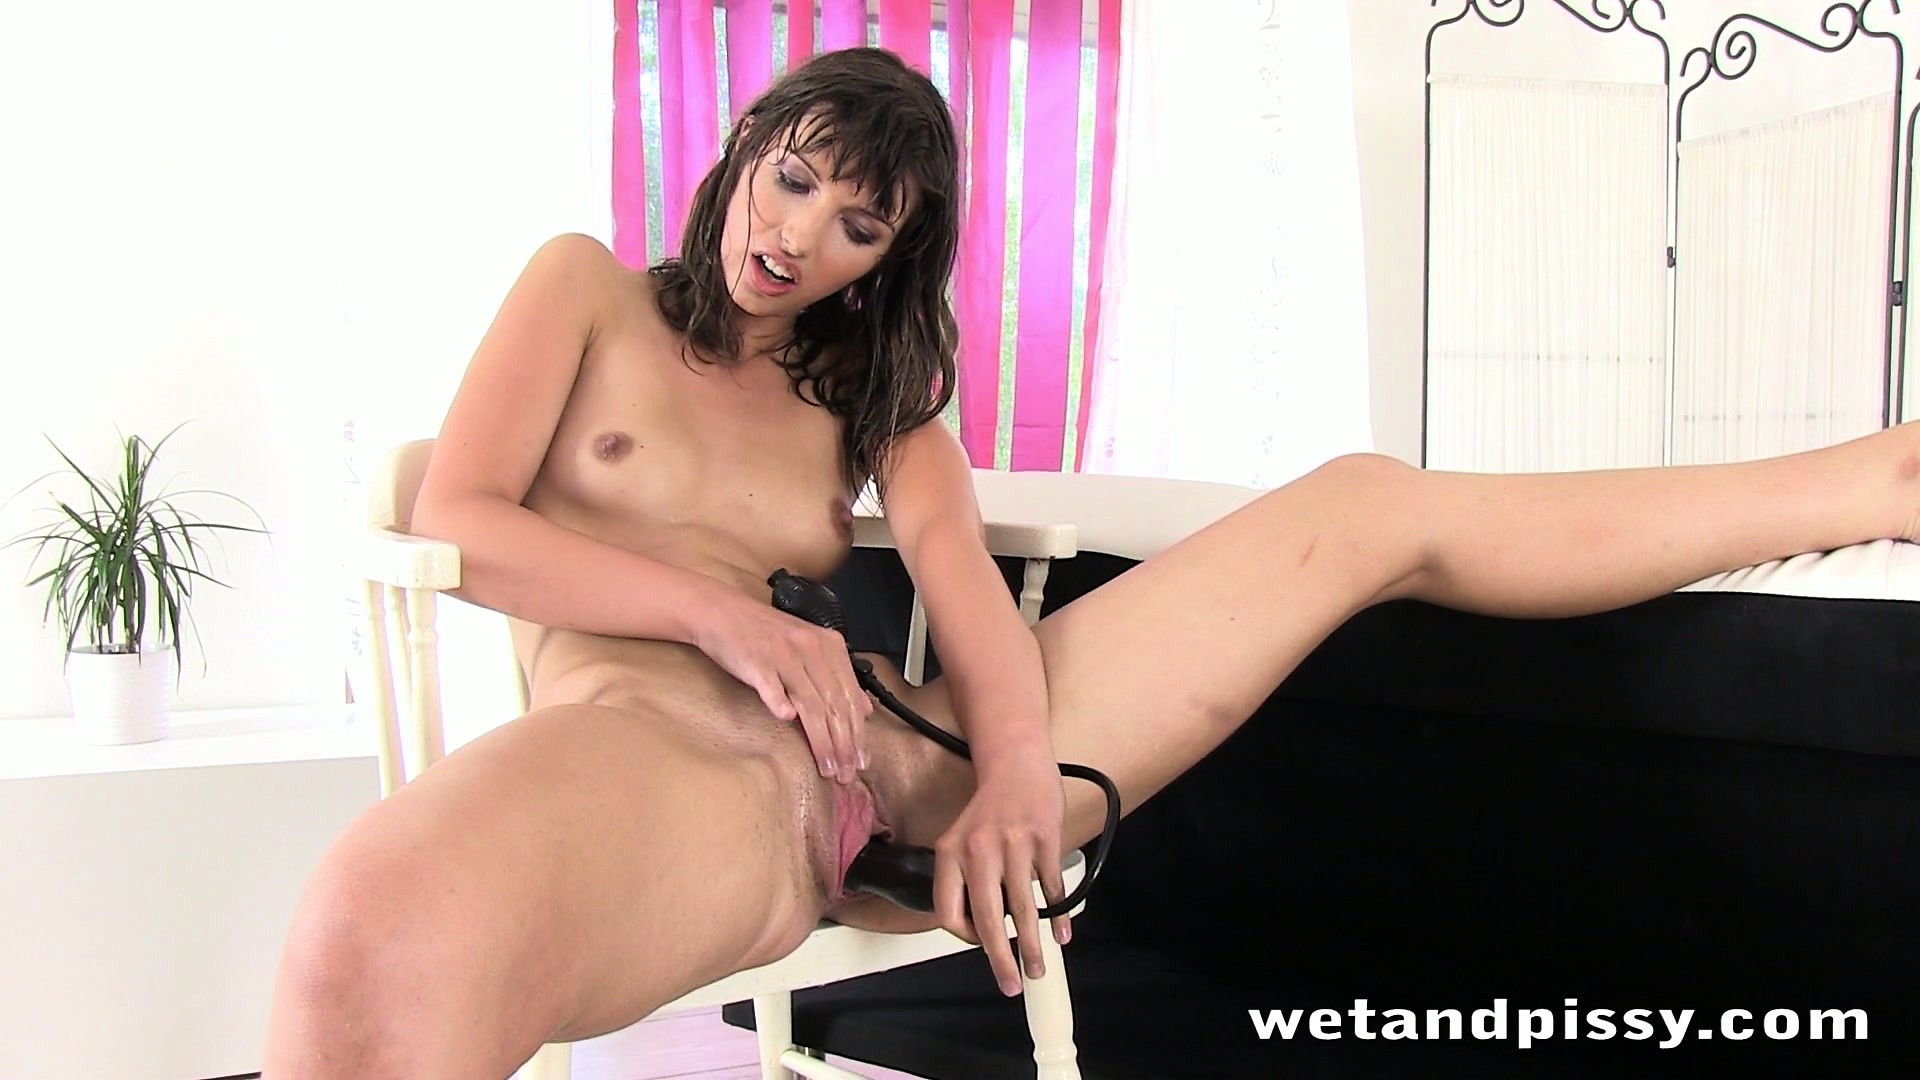 Porn Tube of Skinny Brunette Bimbo Fills Her Pussy Up With An Inflatable Toy